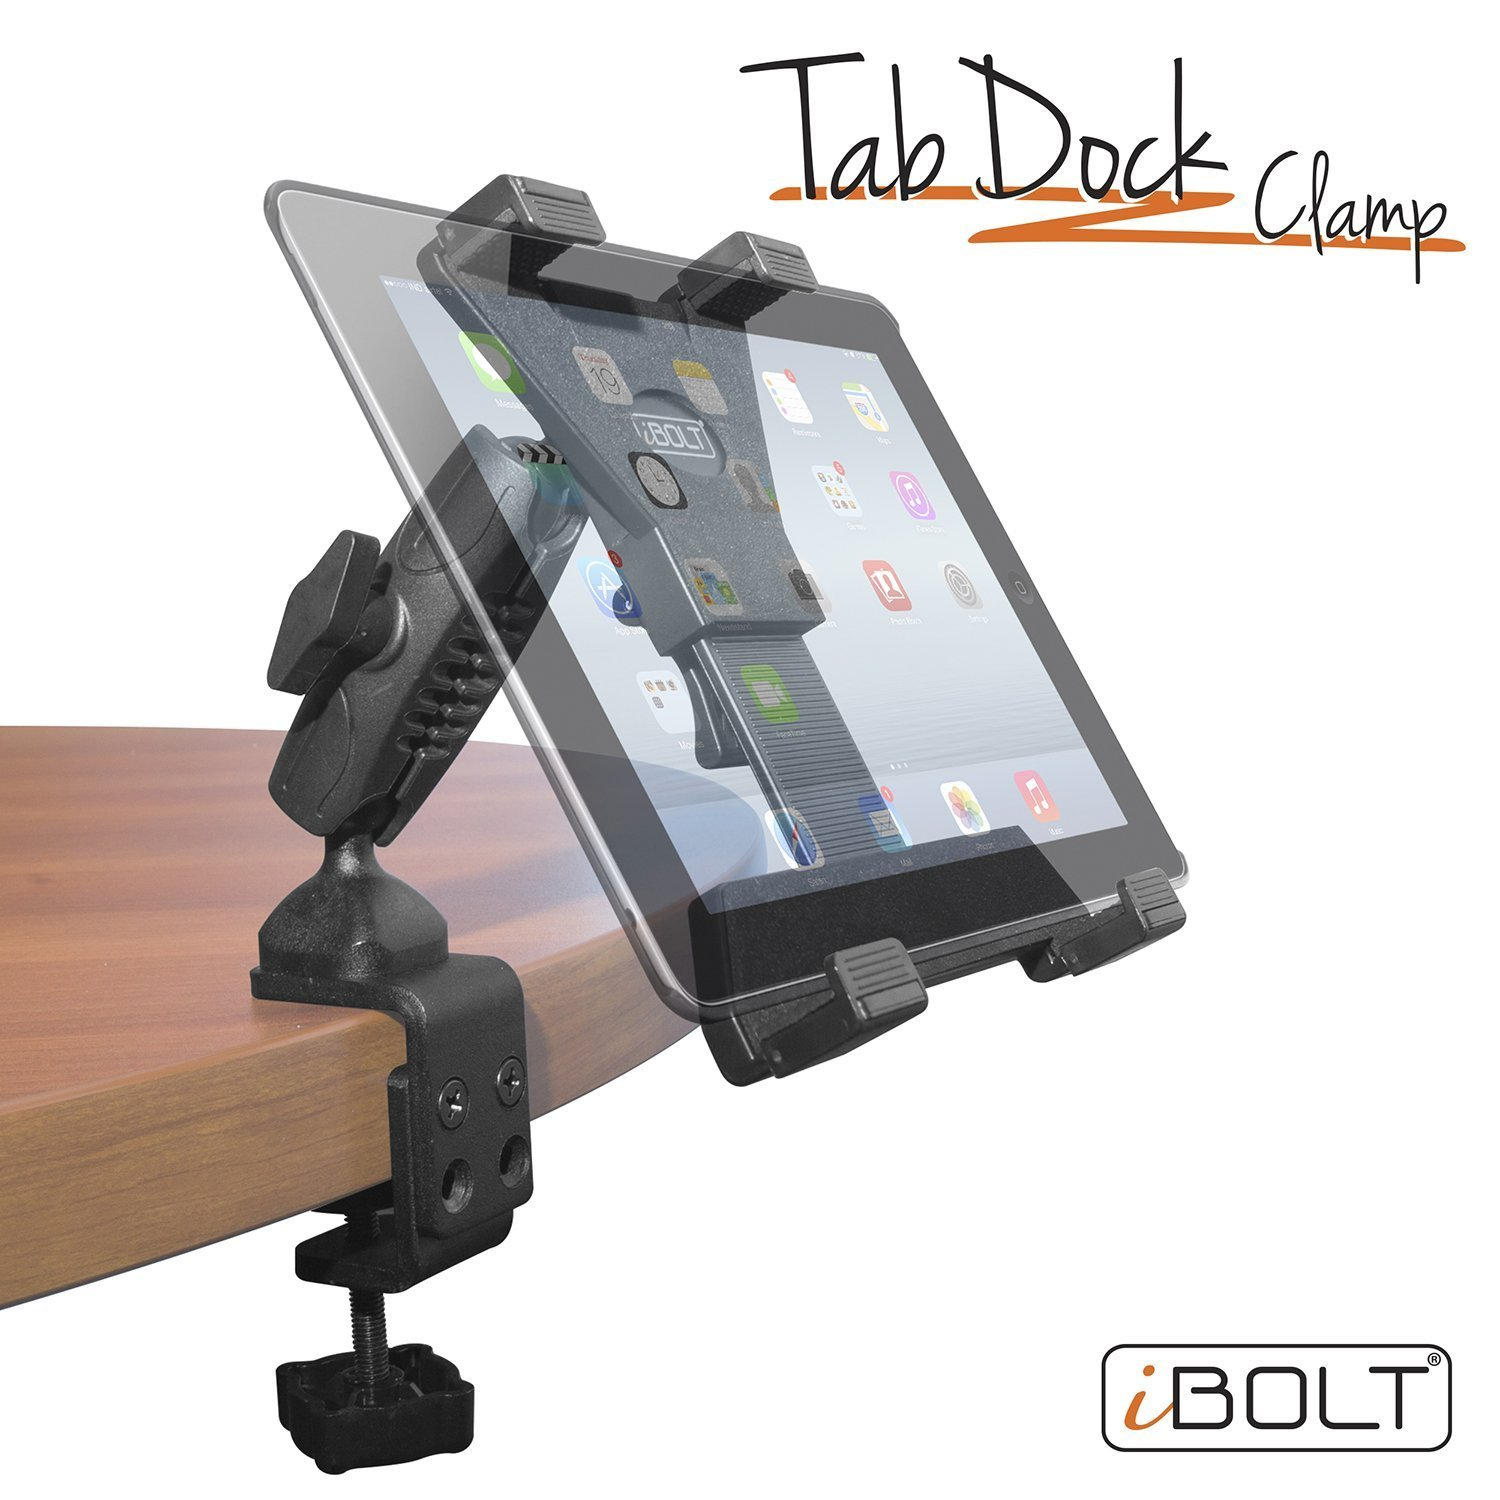 iBOLT TabDock Bizmount Clamp- Heavy Duty Dual-Ball C-Clamp mount for all 7'' - 10'' tablets (iPad, Samsung Galaxy Tab, etc.) For Desks, Tables, Wheelchairs, Carts: Great For Homes, Schools, Offices by iBOLT (Image #2)